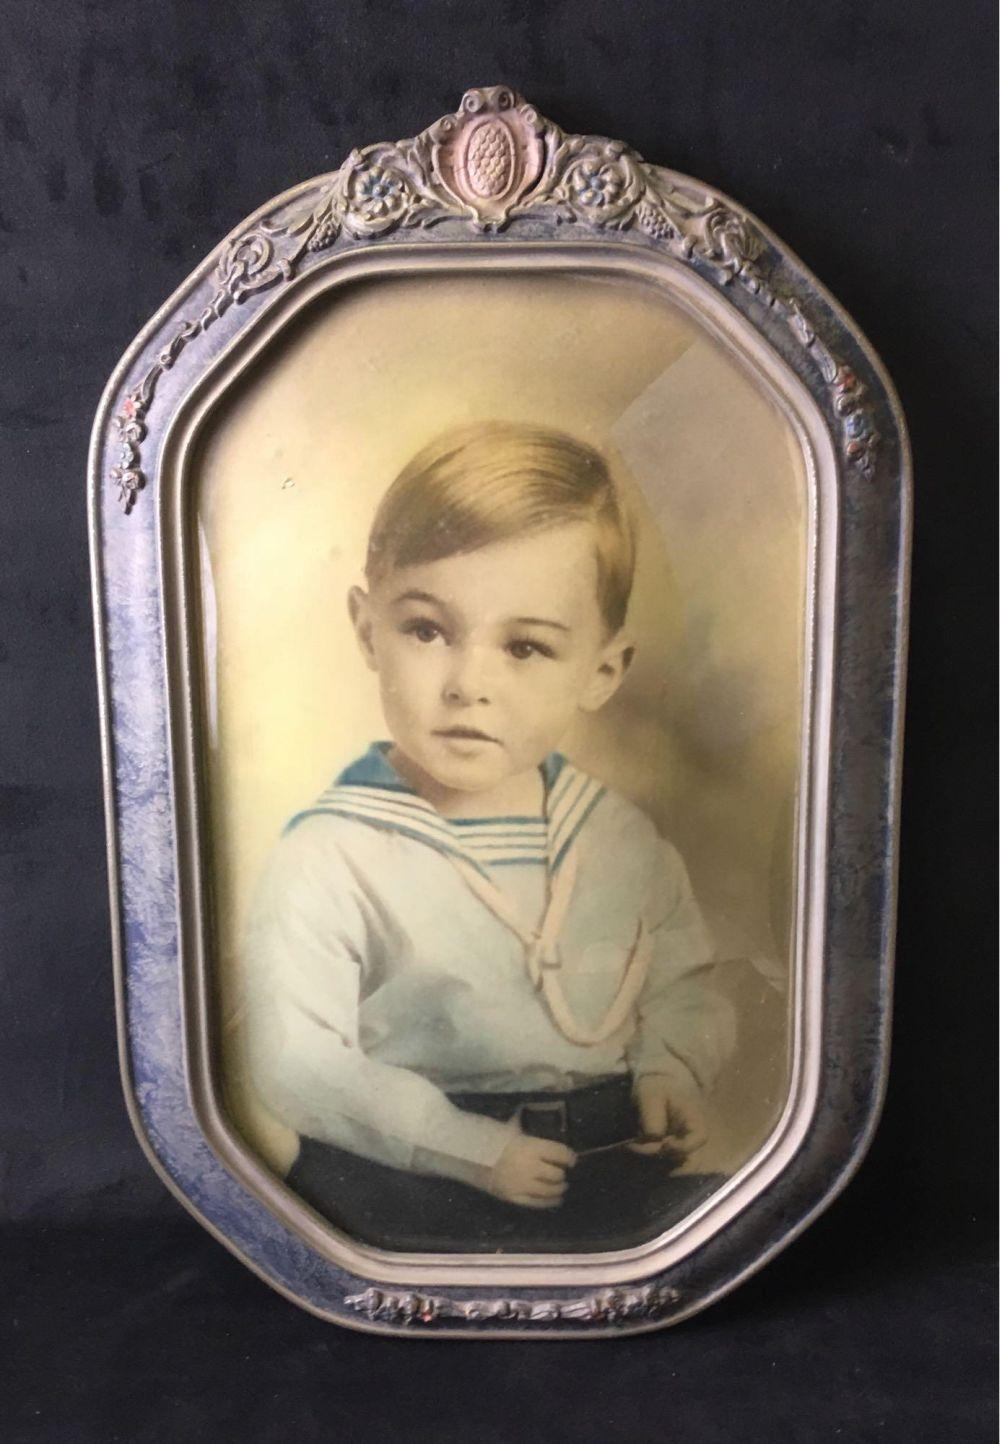 Lot 384: Vintage Convex Glass Frame with Photograph of Young Boy